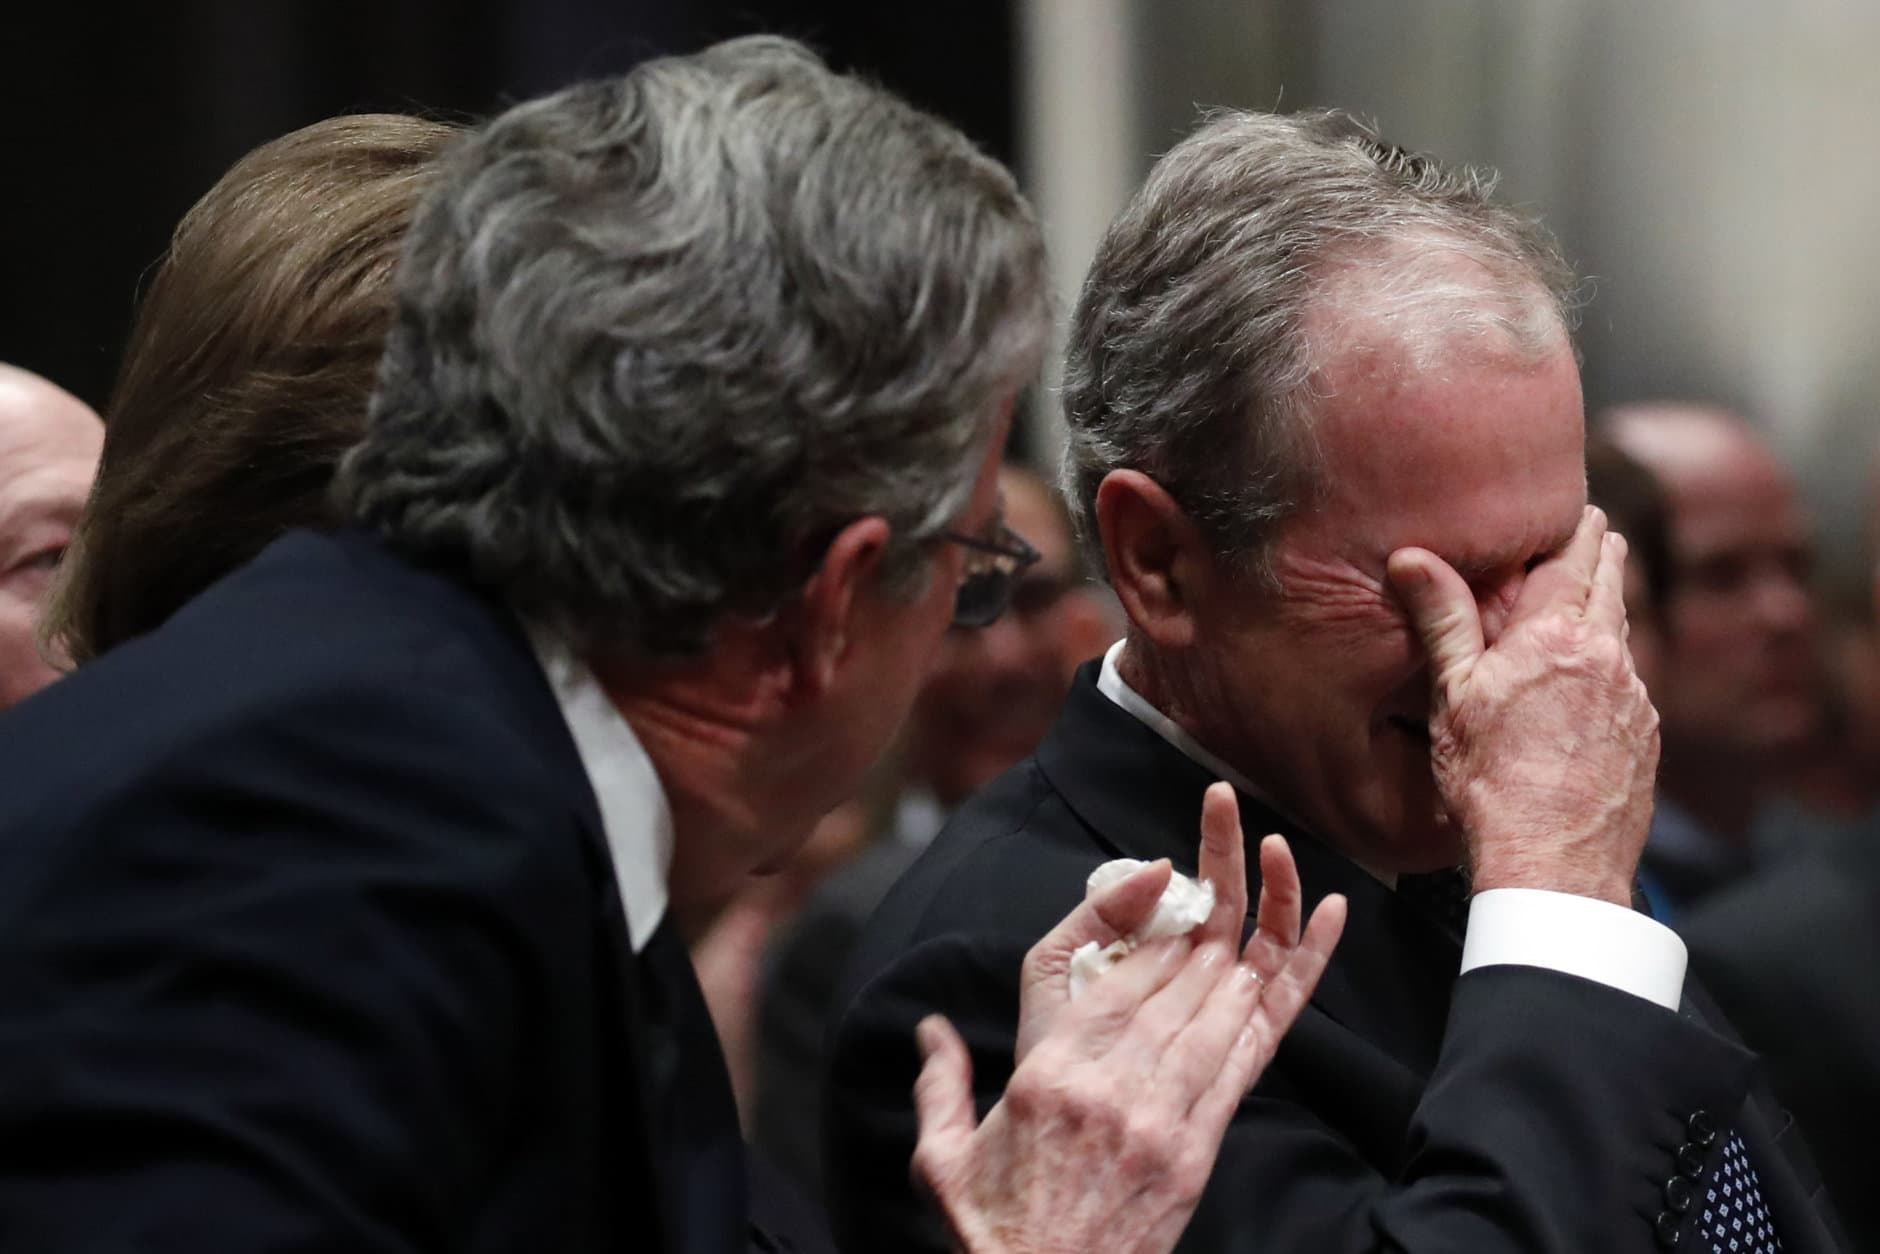 Former President George W. Bush, right, cries after speaking during the state funeral for his father, former President George H.W. Bush, at the Washington National Cathedral on December 5, 2018 in Washington, DC. President Bush will be buried at his final resting place at the George H.W. Bush Presidential Library at Texas A&M University in College Station, Texas. A WWII combat veteran, Bush served as a member of Congress from Texas, ambassador to the United Nations, director of the CIA, vice president and 41st president of the United States. (Photo by Alex Brandon - Pool/Getty Images)